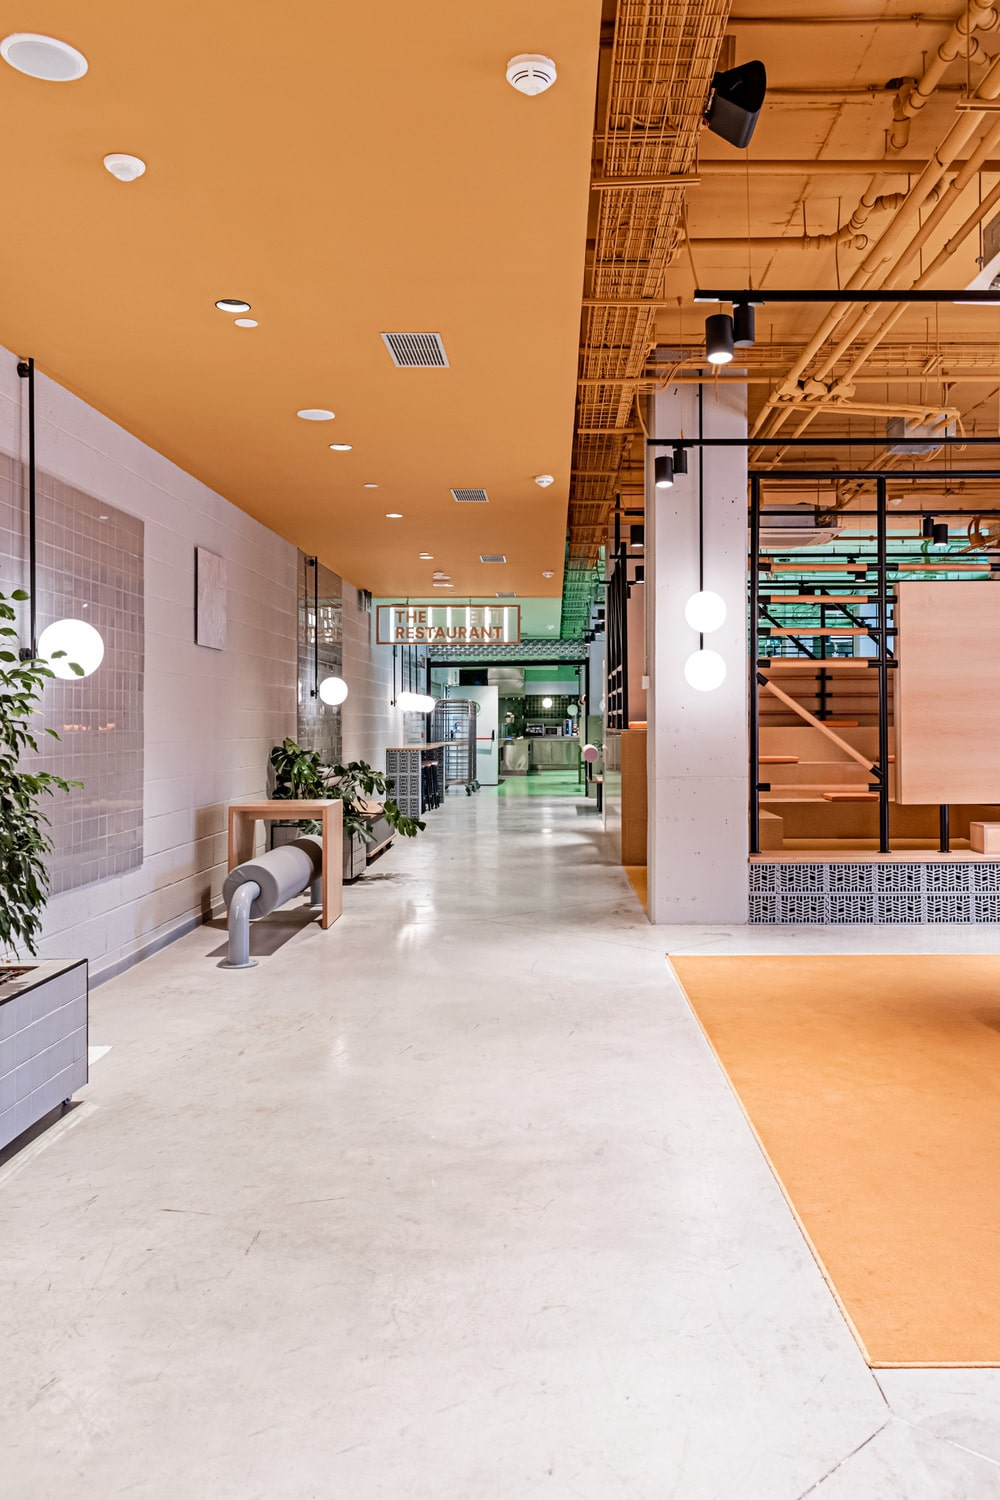 This is a large hallway inside the student residency with a colorful industrial-style design and bright subway tiles on the side leading to the restaurant.